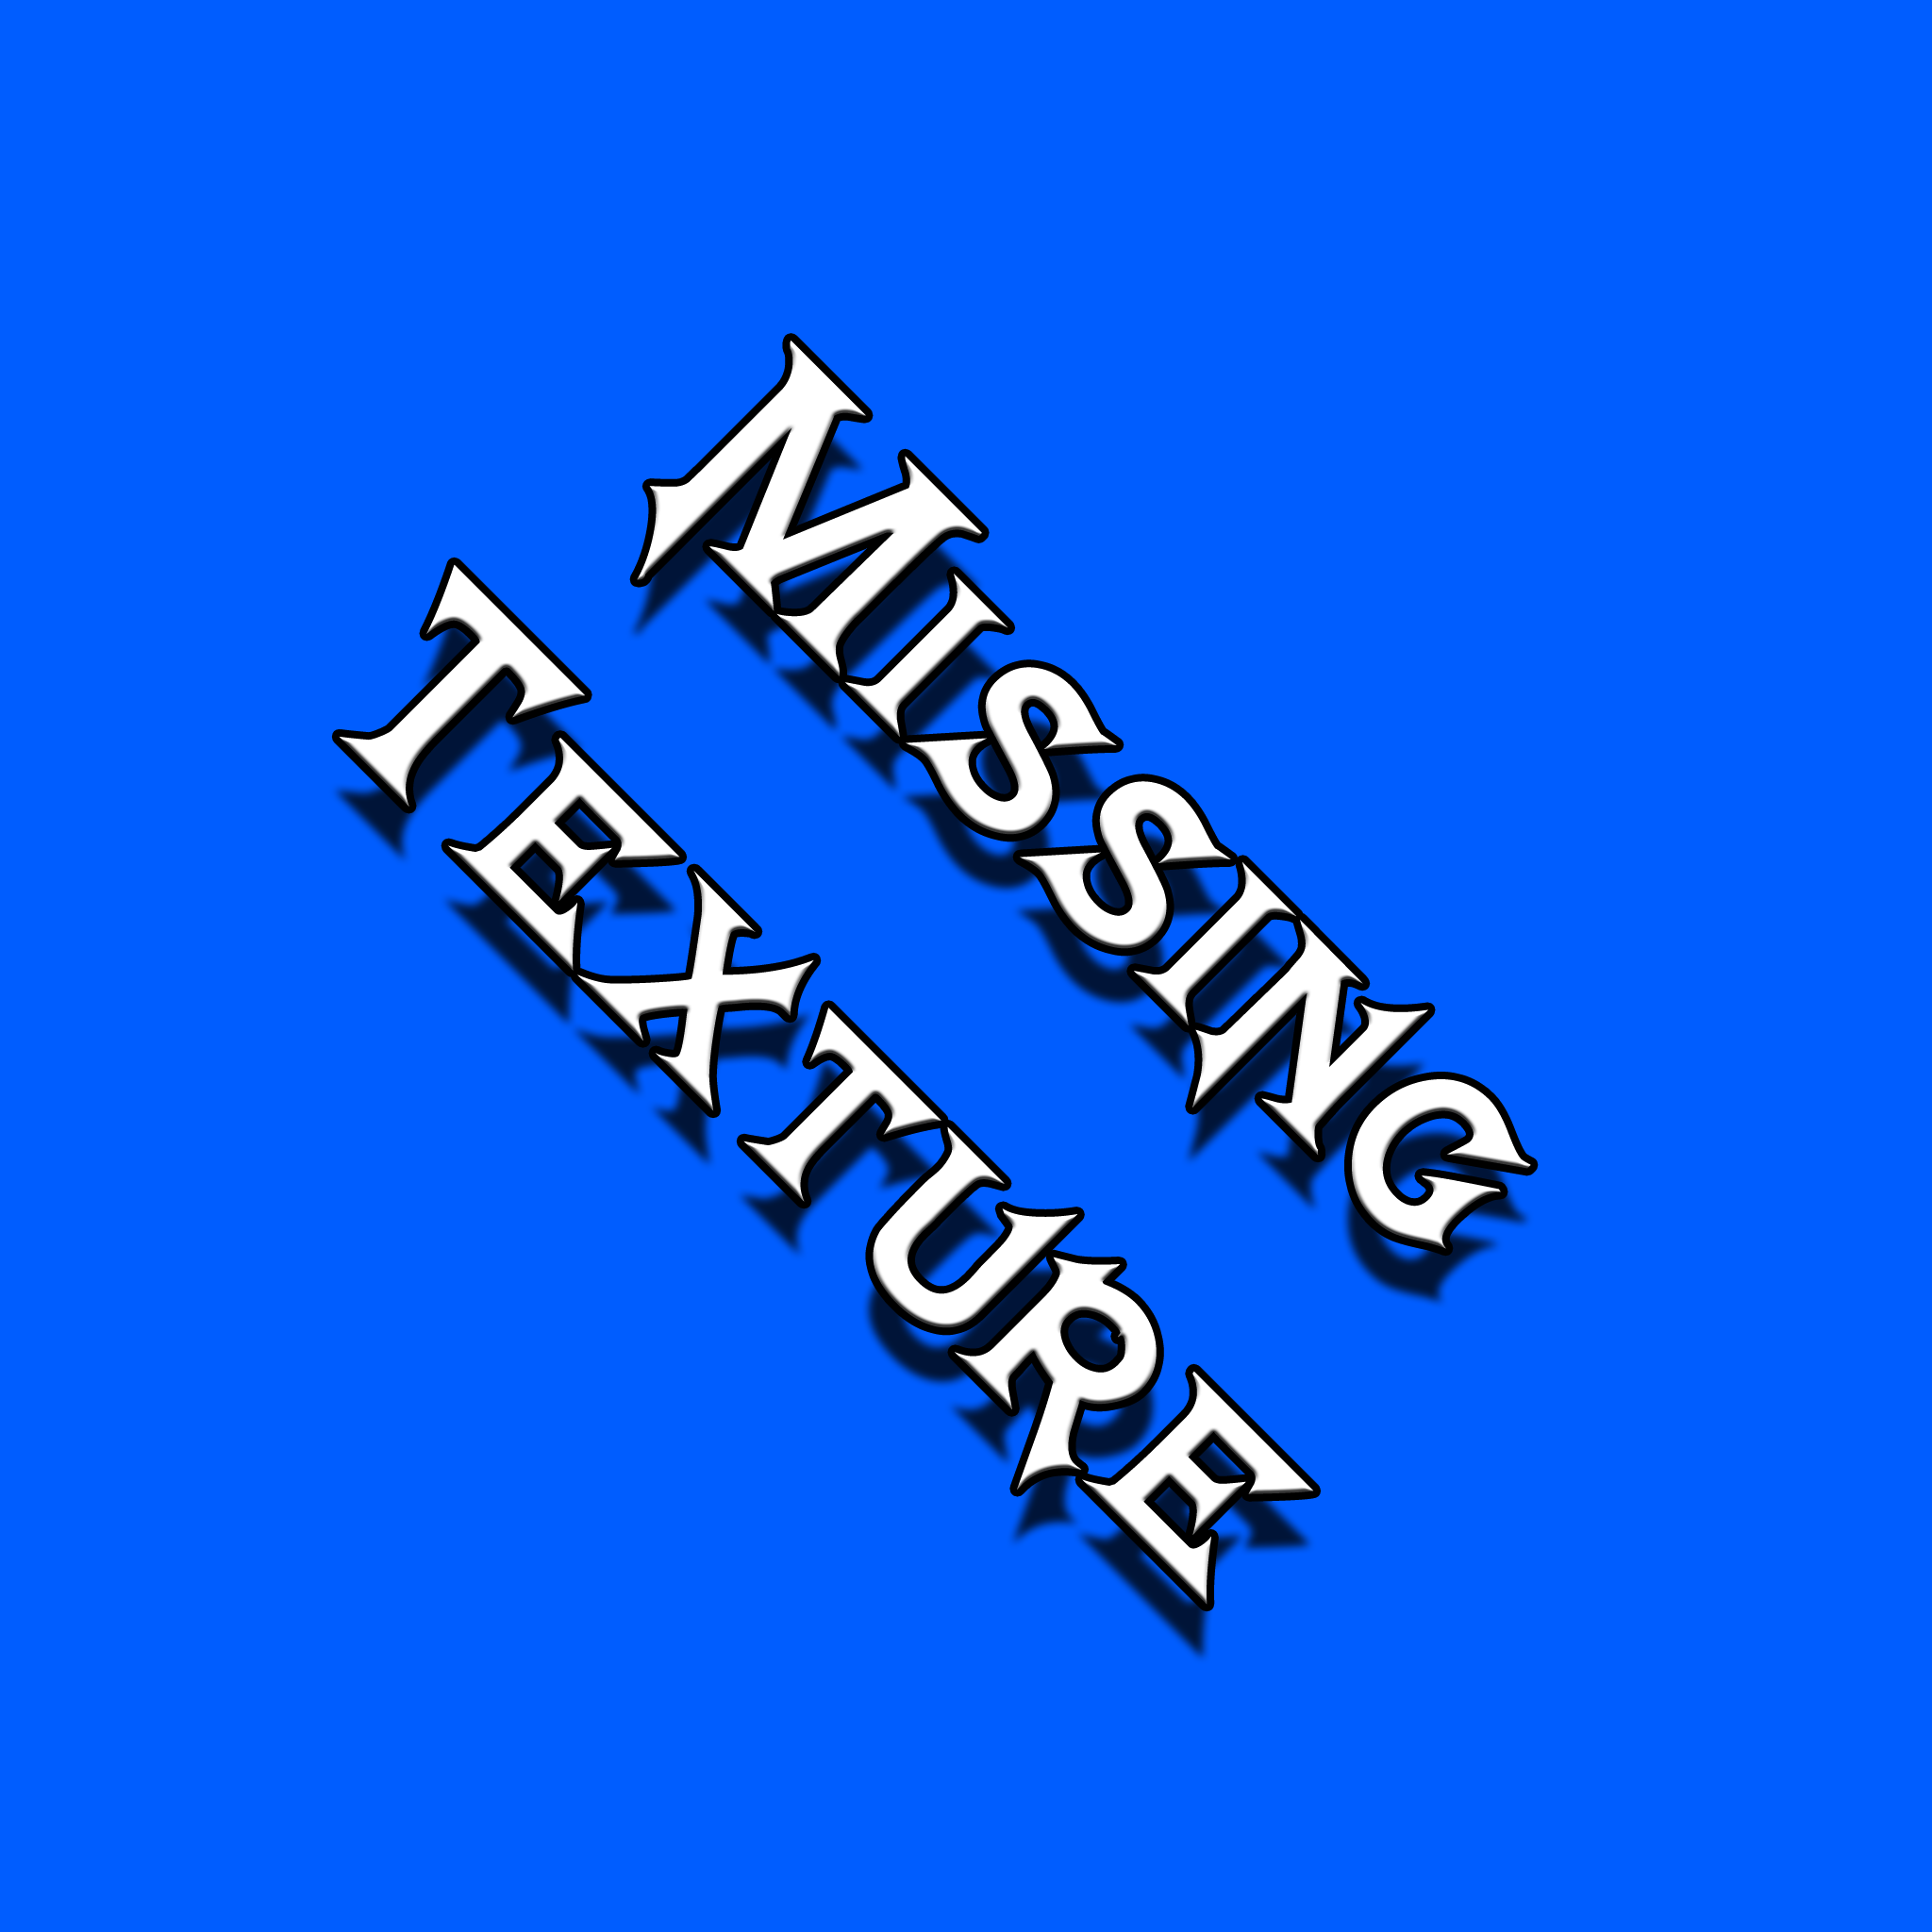 11985-t-missing-png